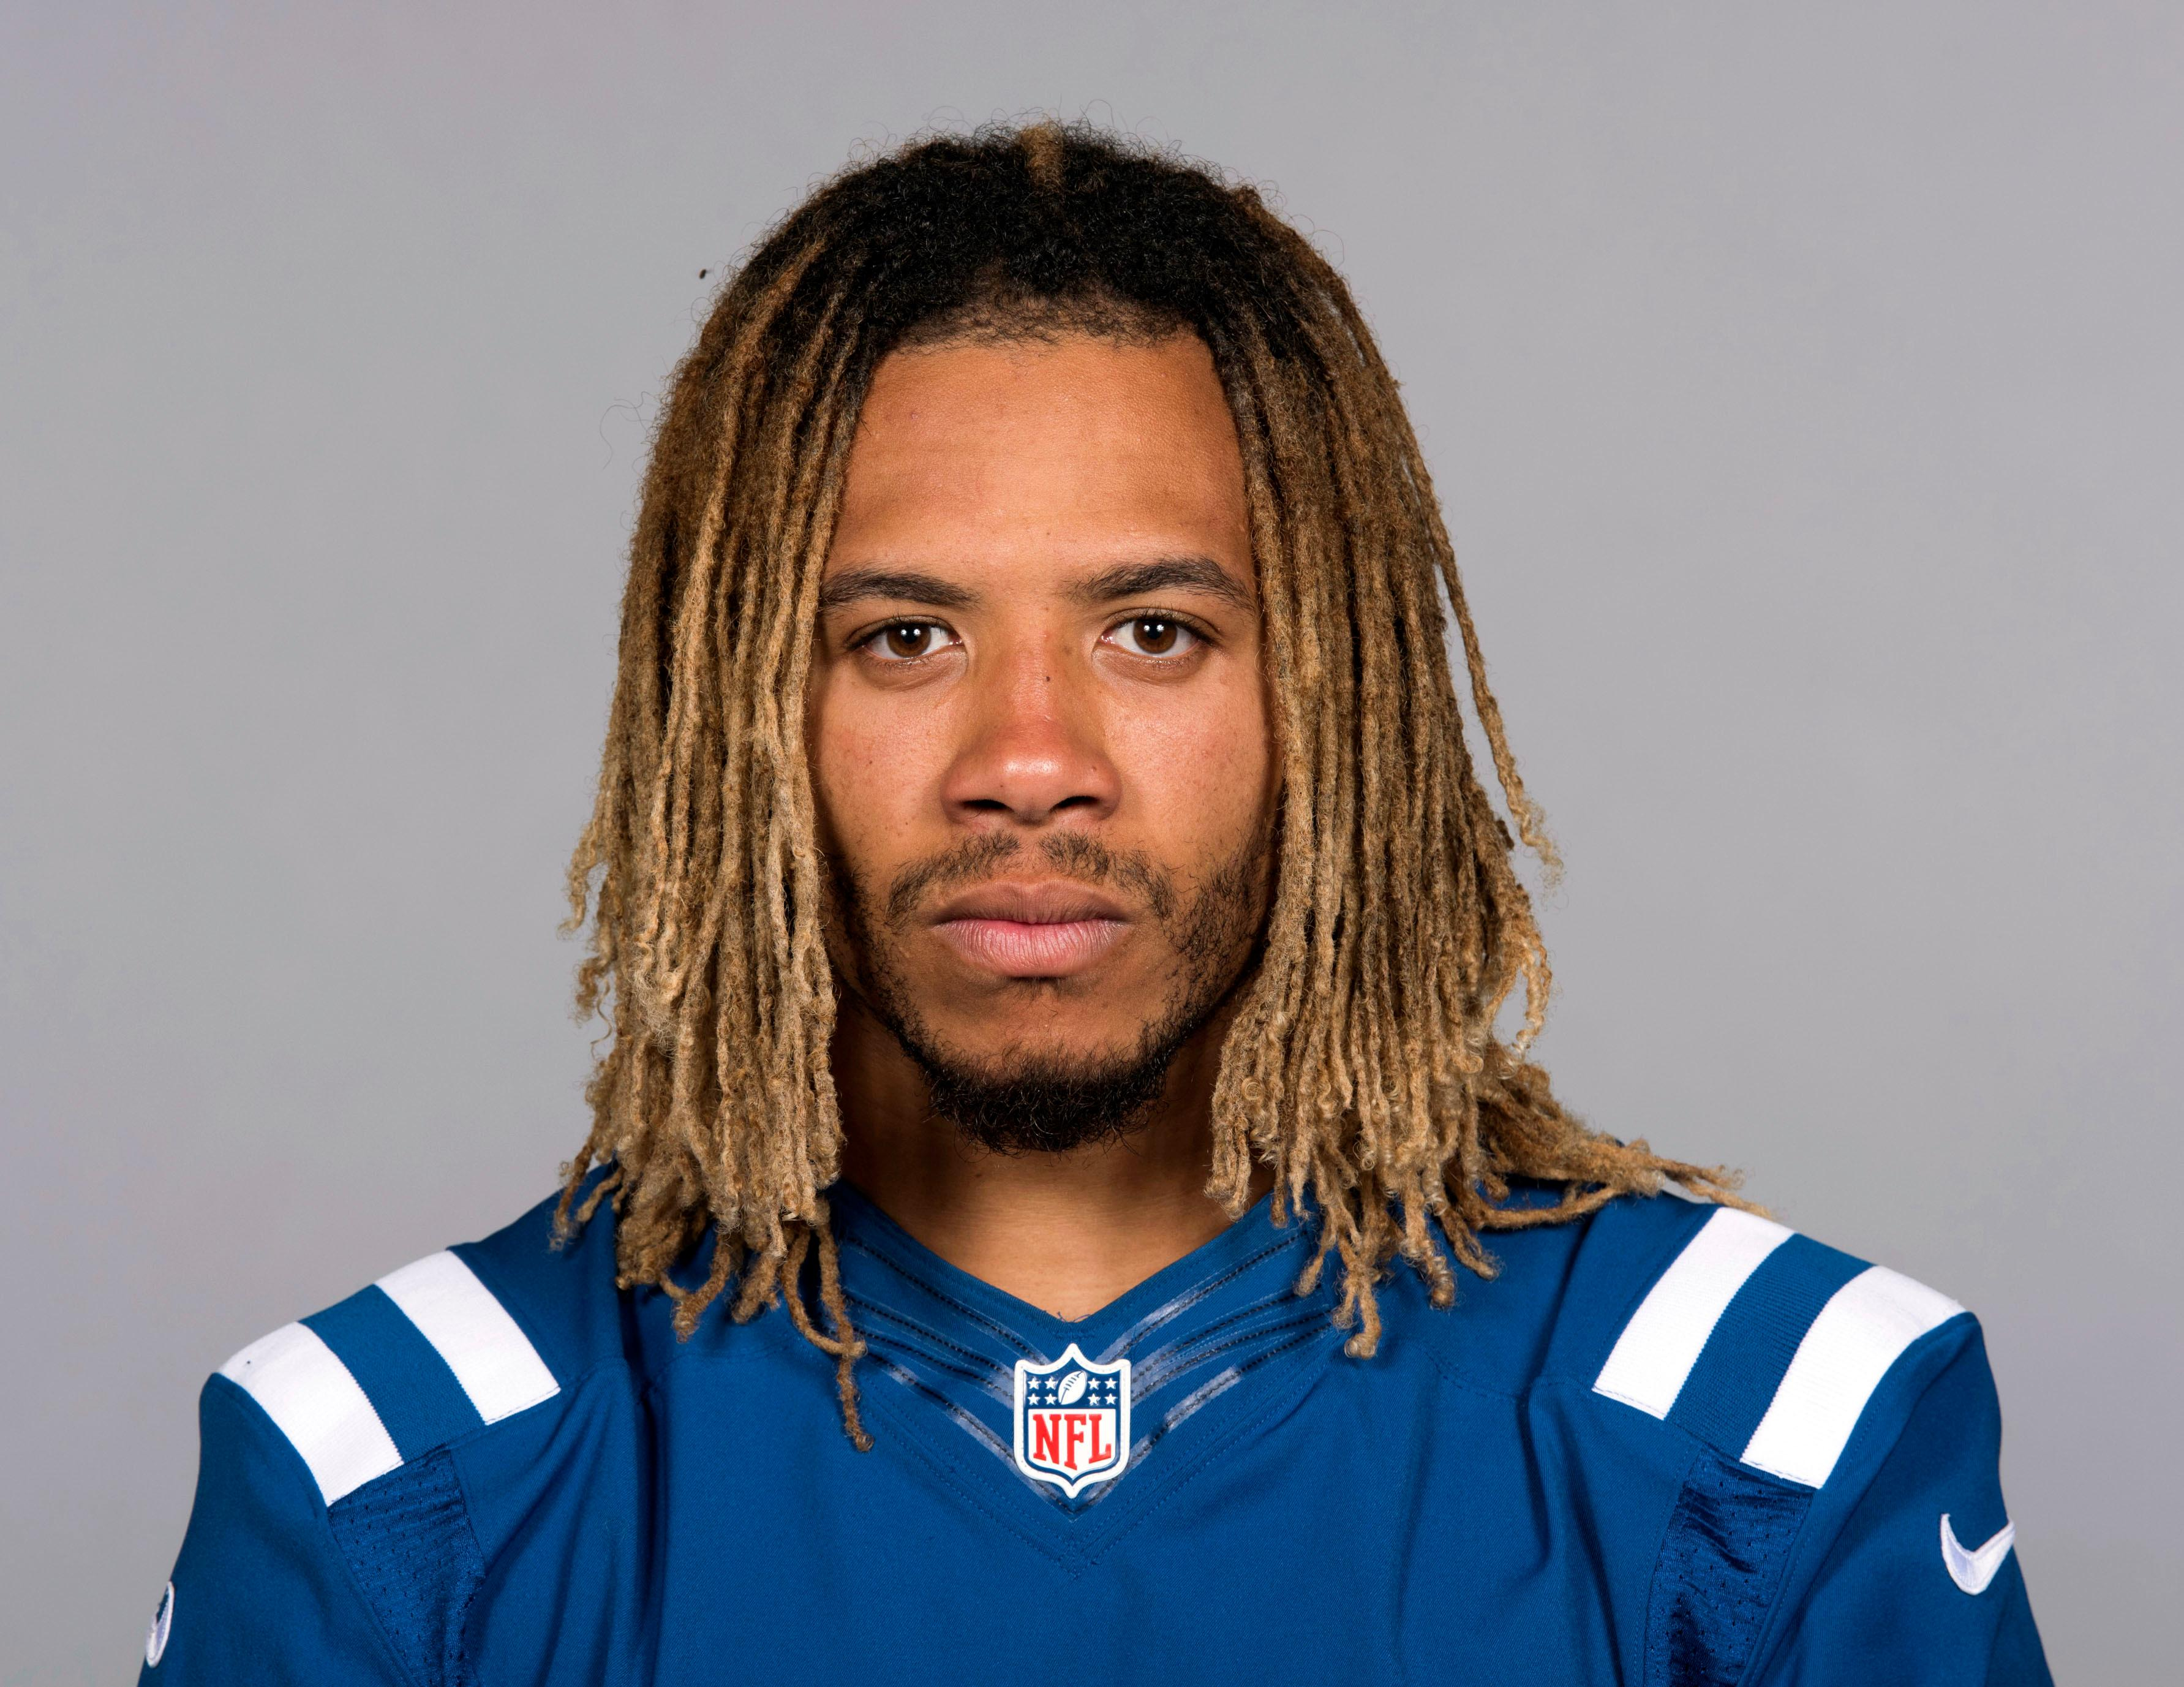 "FILE - This June 13, 2017 file photo shows Indianapolis Colts football player Edwin Jackson.  Jackson, 26, was one of two men killed when a suspected drunken driver struck them as they stood outside their car along a highway in Indianapolis. The Colts said in a statement Sunday, Feb. 4, 3018, that the team is ""heartbroken"" by Jackson's death. Authorities say the driver that struck them before dawn on Sunday tried to flee on foot but was quickly captured.  (AP Photo, File)"